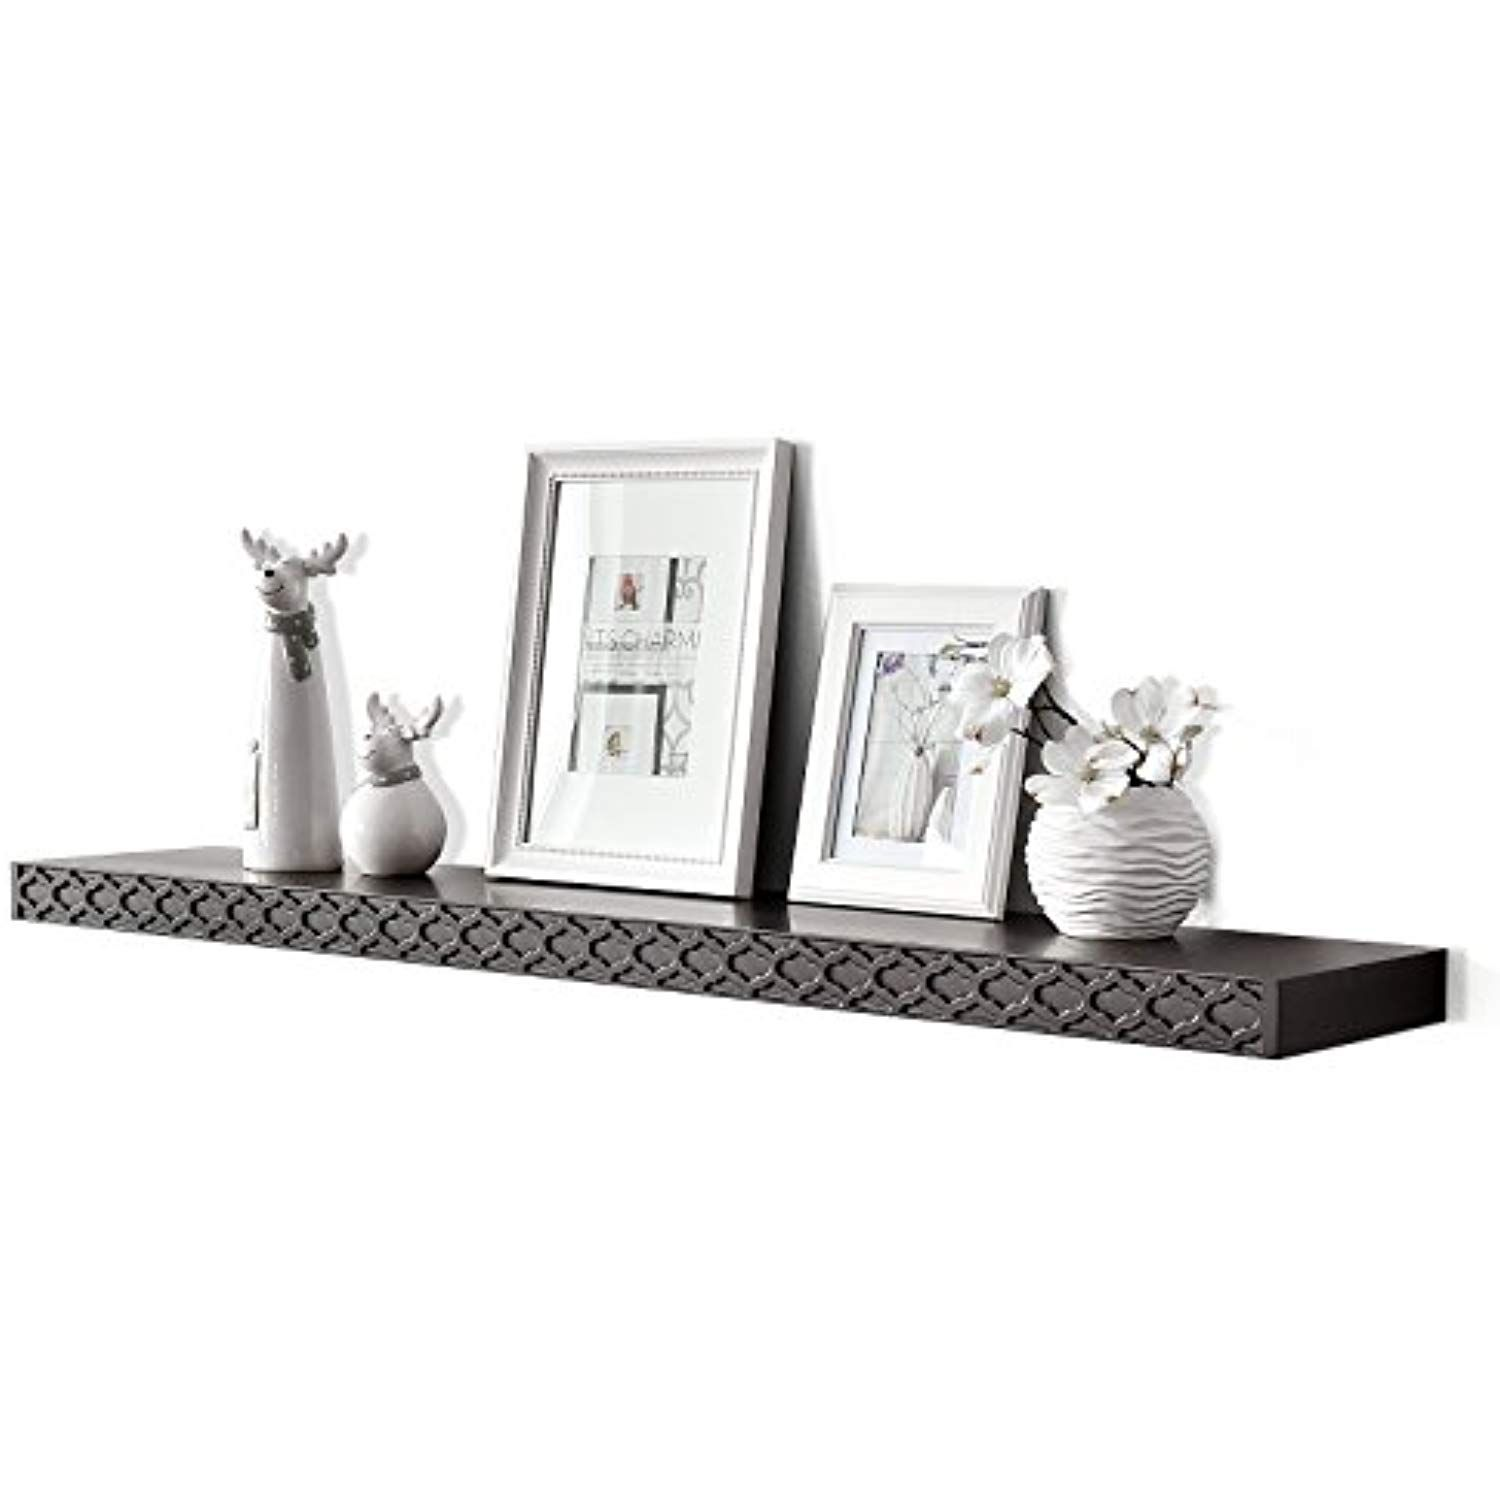 Welland 36 Inch Pattern Floating Shelf Picture Ledge Shelves Wall Shelf 2 Thickness Espresso Learn More By Vis Floating Shelves Shelves Picture Ledge Shelf